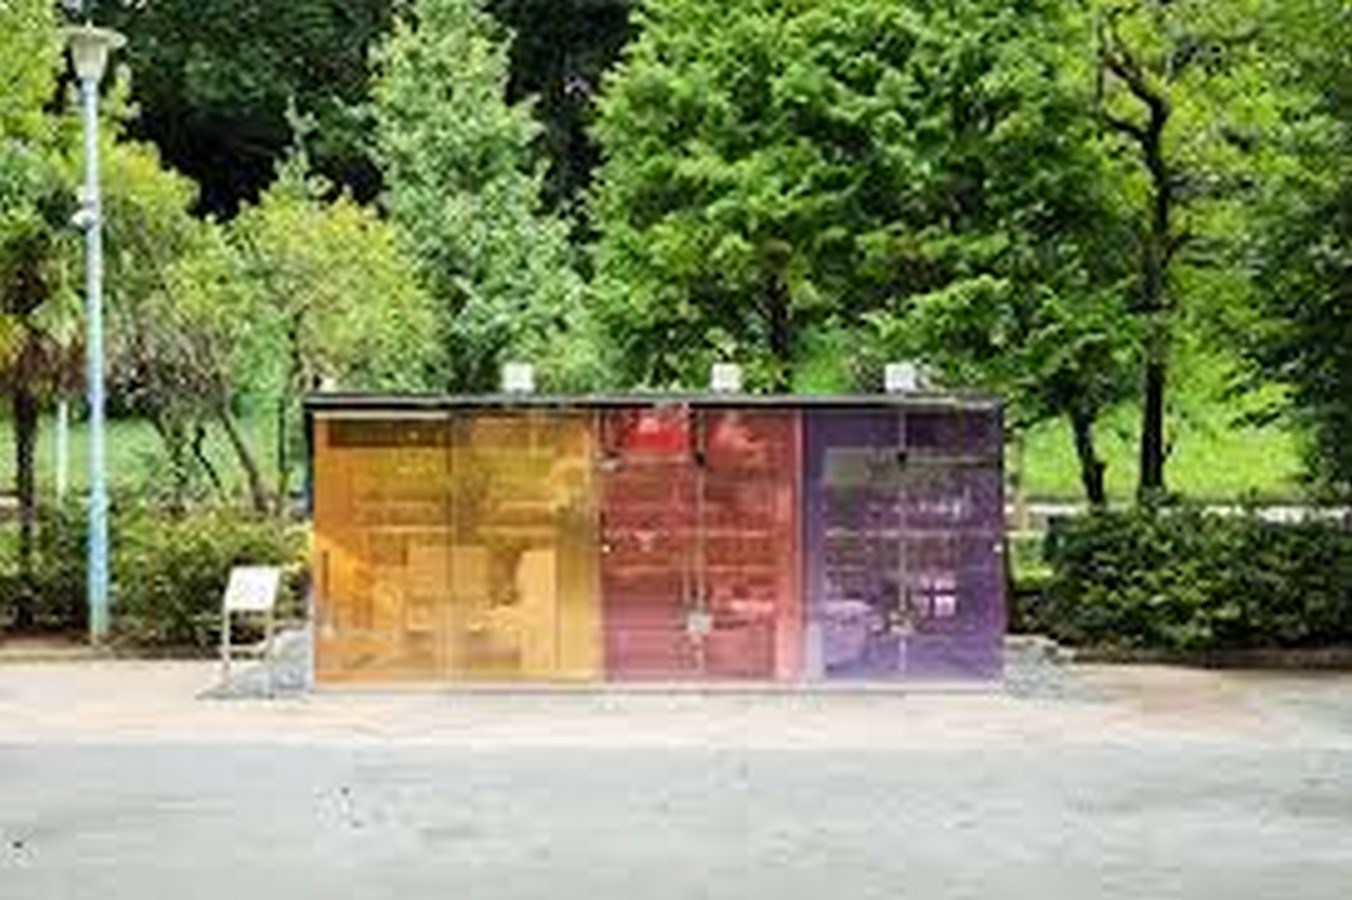 Transparent to Opaque Toilets designed by Shigeru Ban is the new highlights of Tokyo - Sheet1